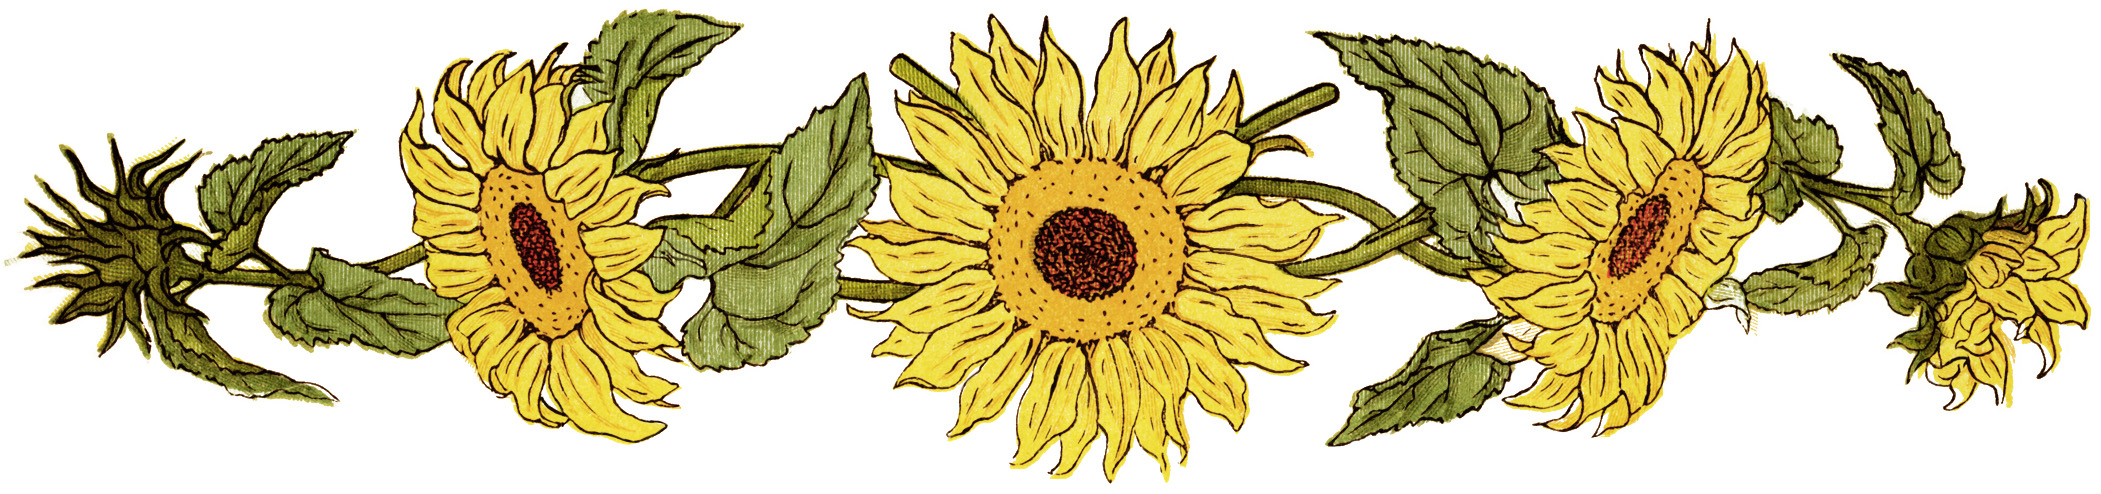 Sunflower Wedding Clipart - Clipart Kid